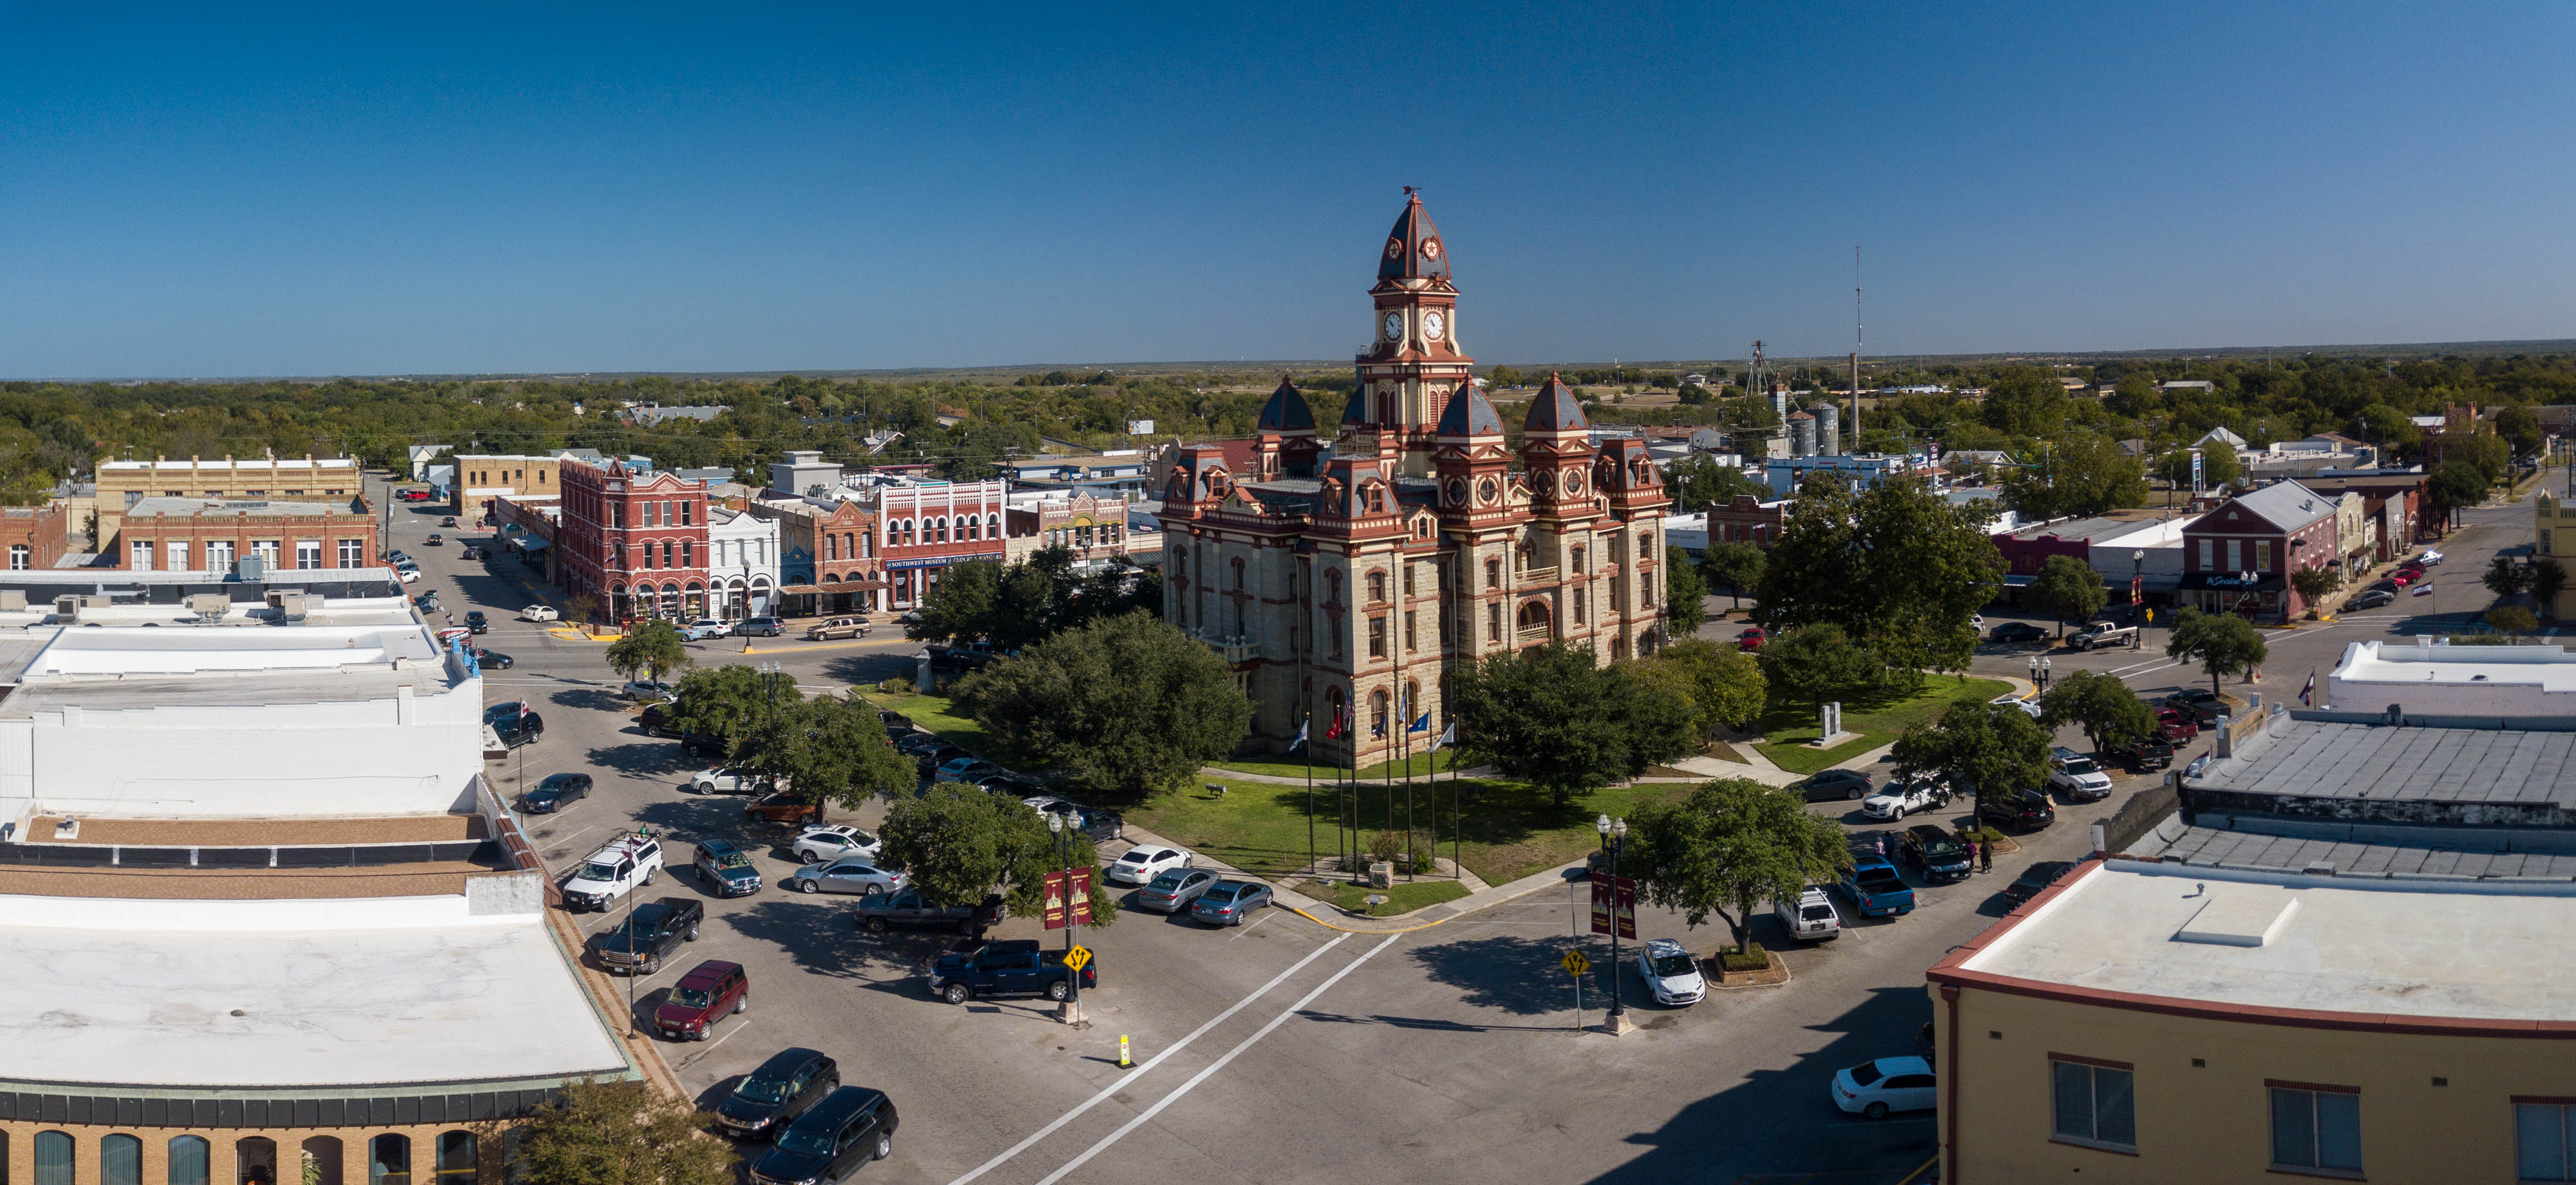 Downtown Lockhart